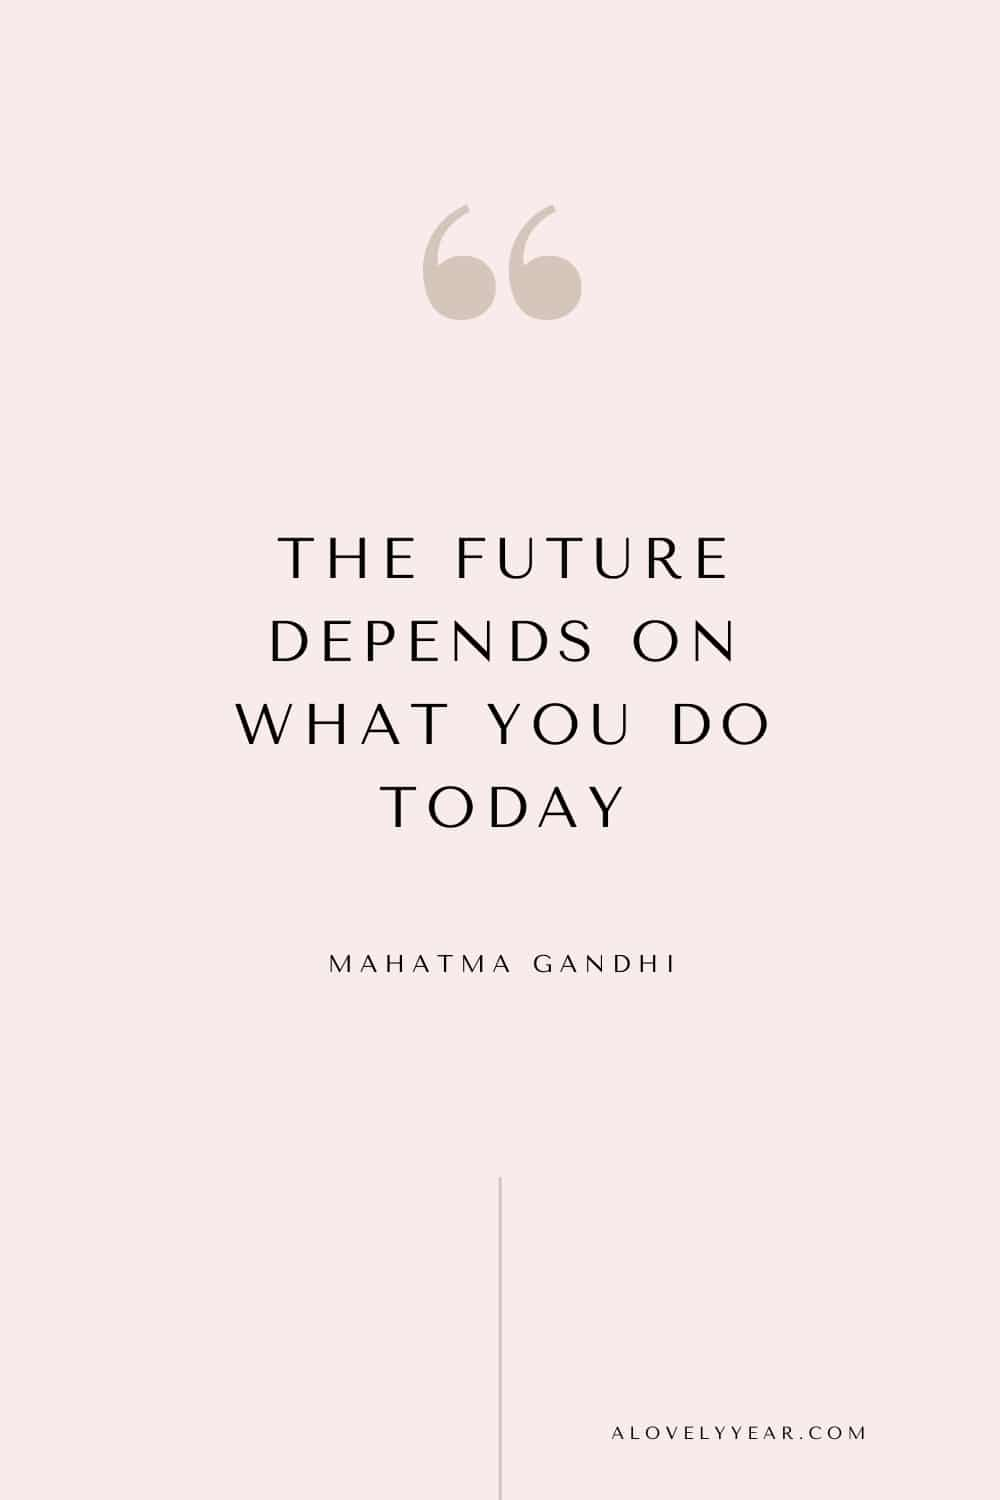 Get things done quote - The future depends on what you do today. - Mahatma Gandhi